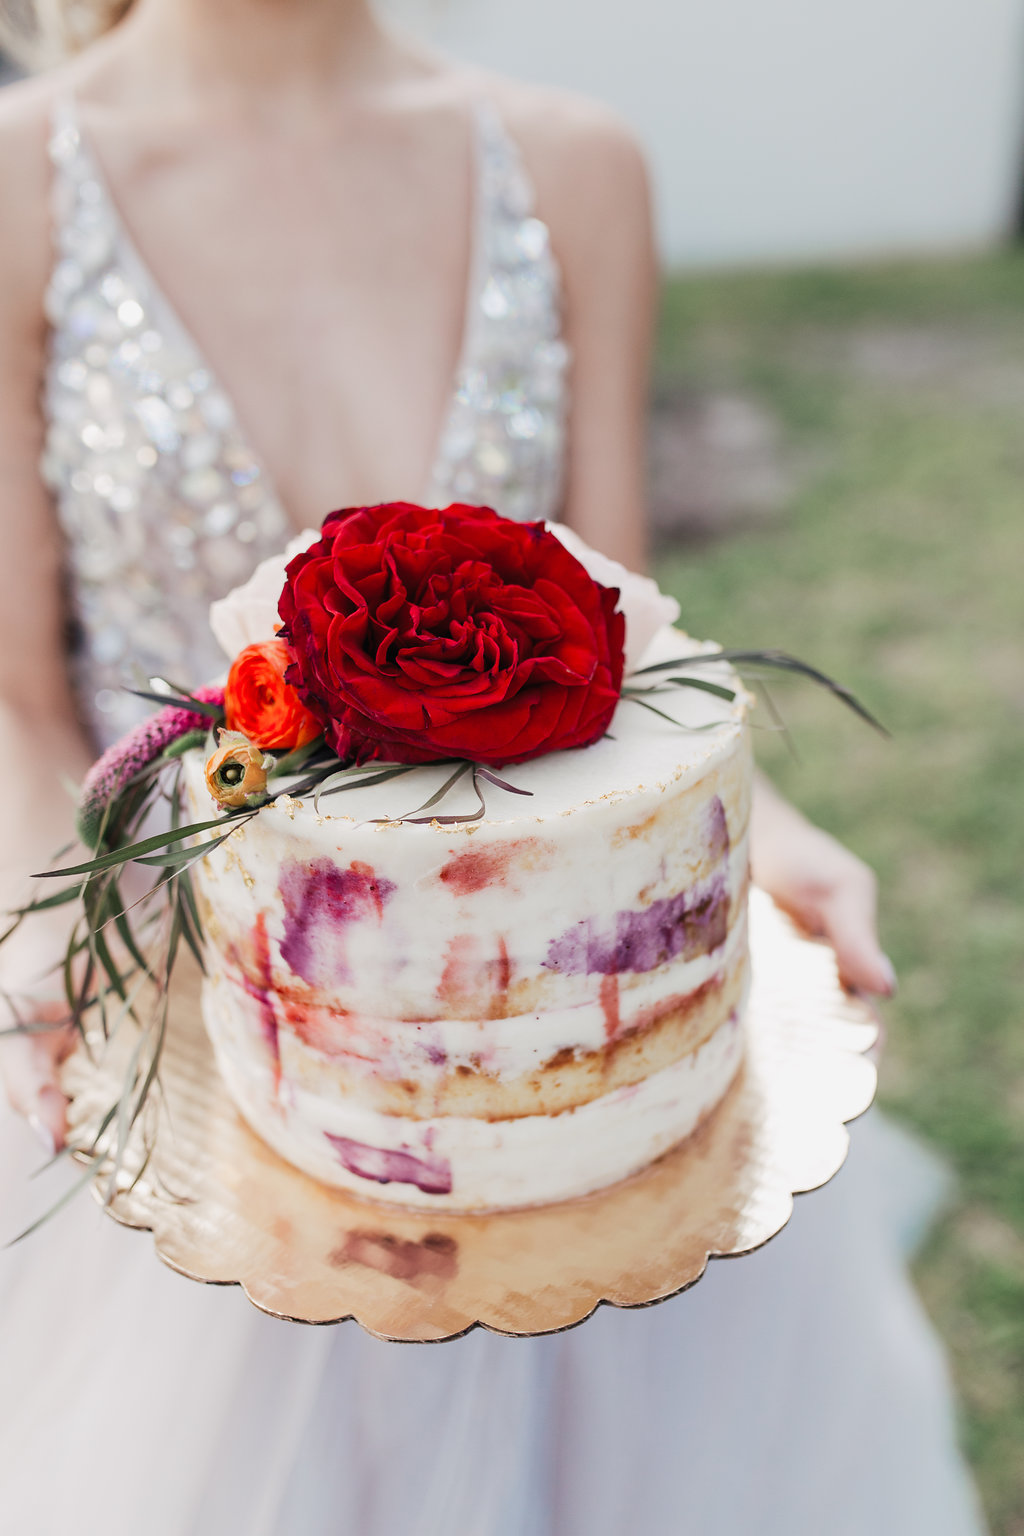 wedding cake topped with red flowers - photo by Alondra Vega Photography https://ruffledblog.com/jewel-toned-wedding-ideas-with-a-surprise-proposal